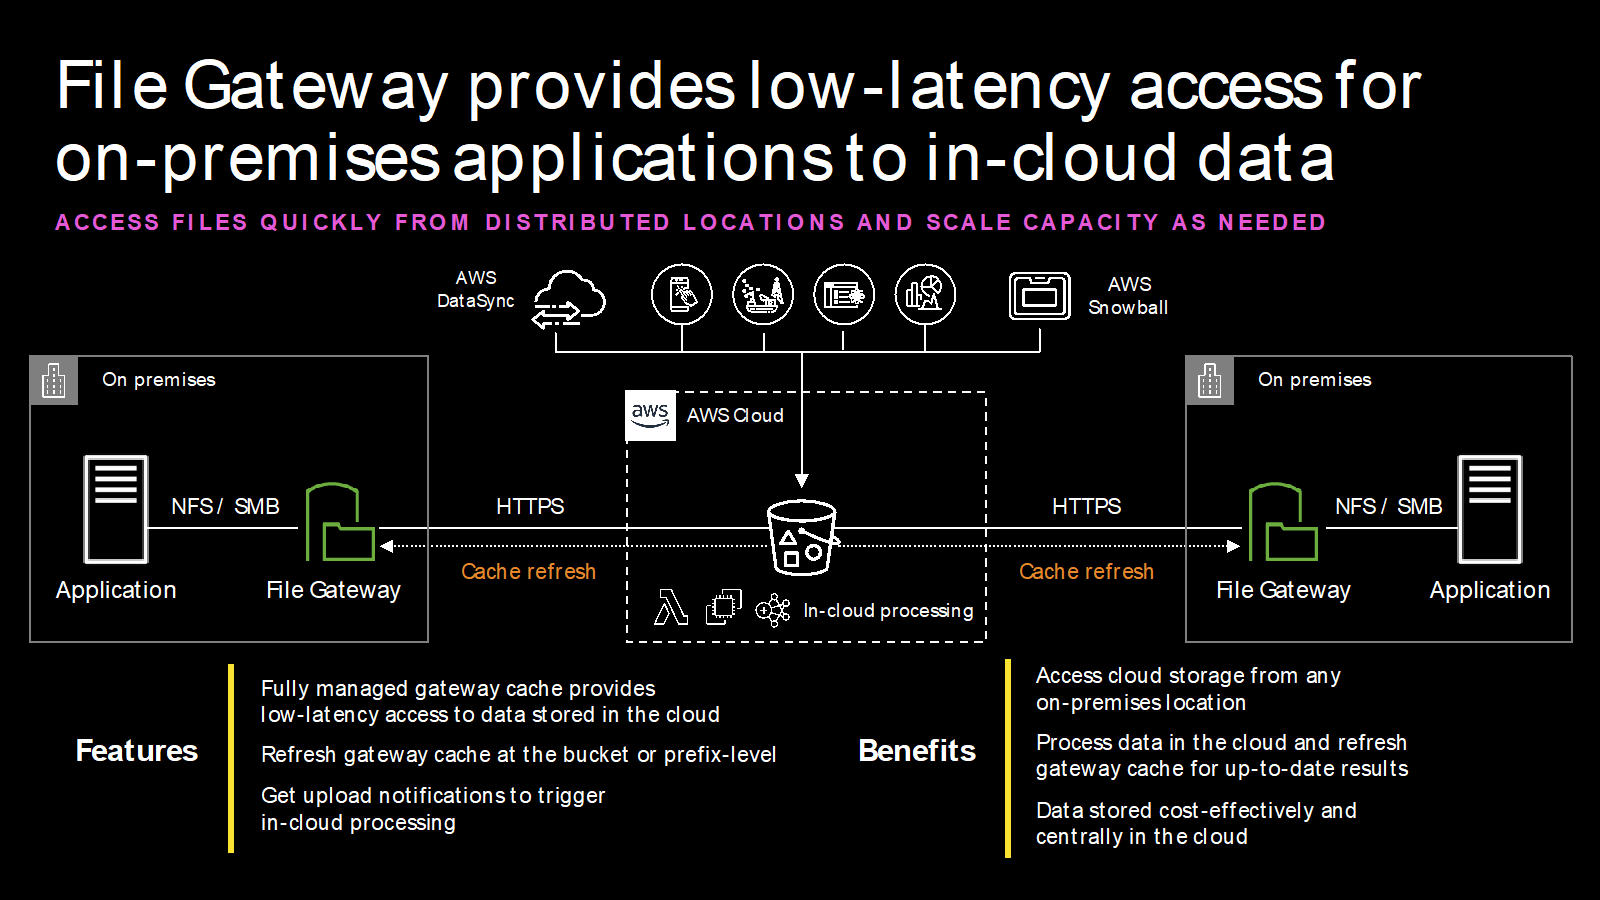 File Gateway provides low-latency access for on-premises applications to in-cloud data